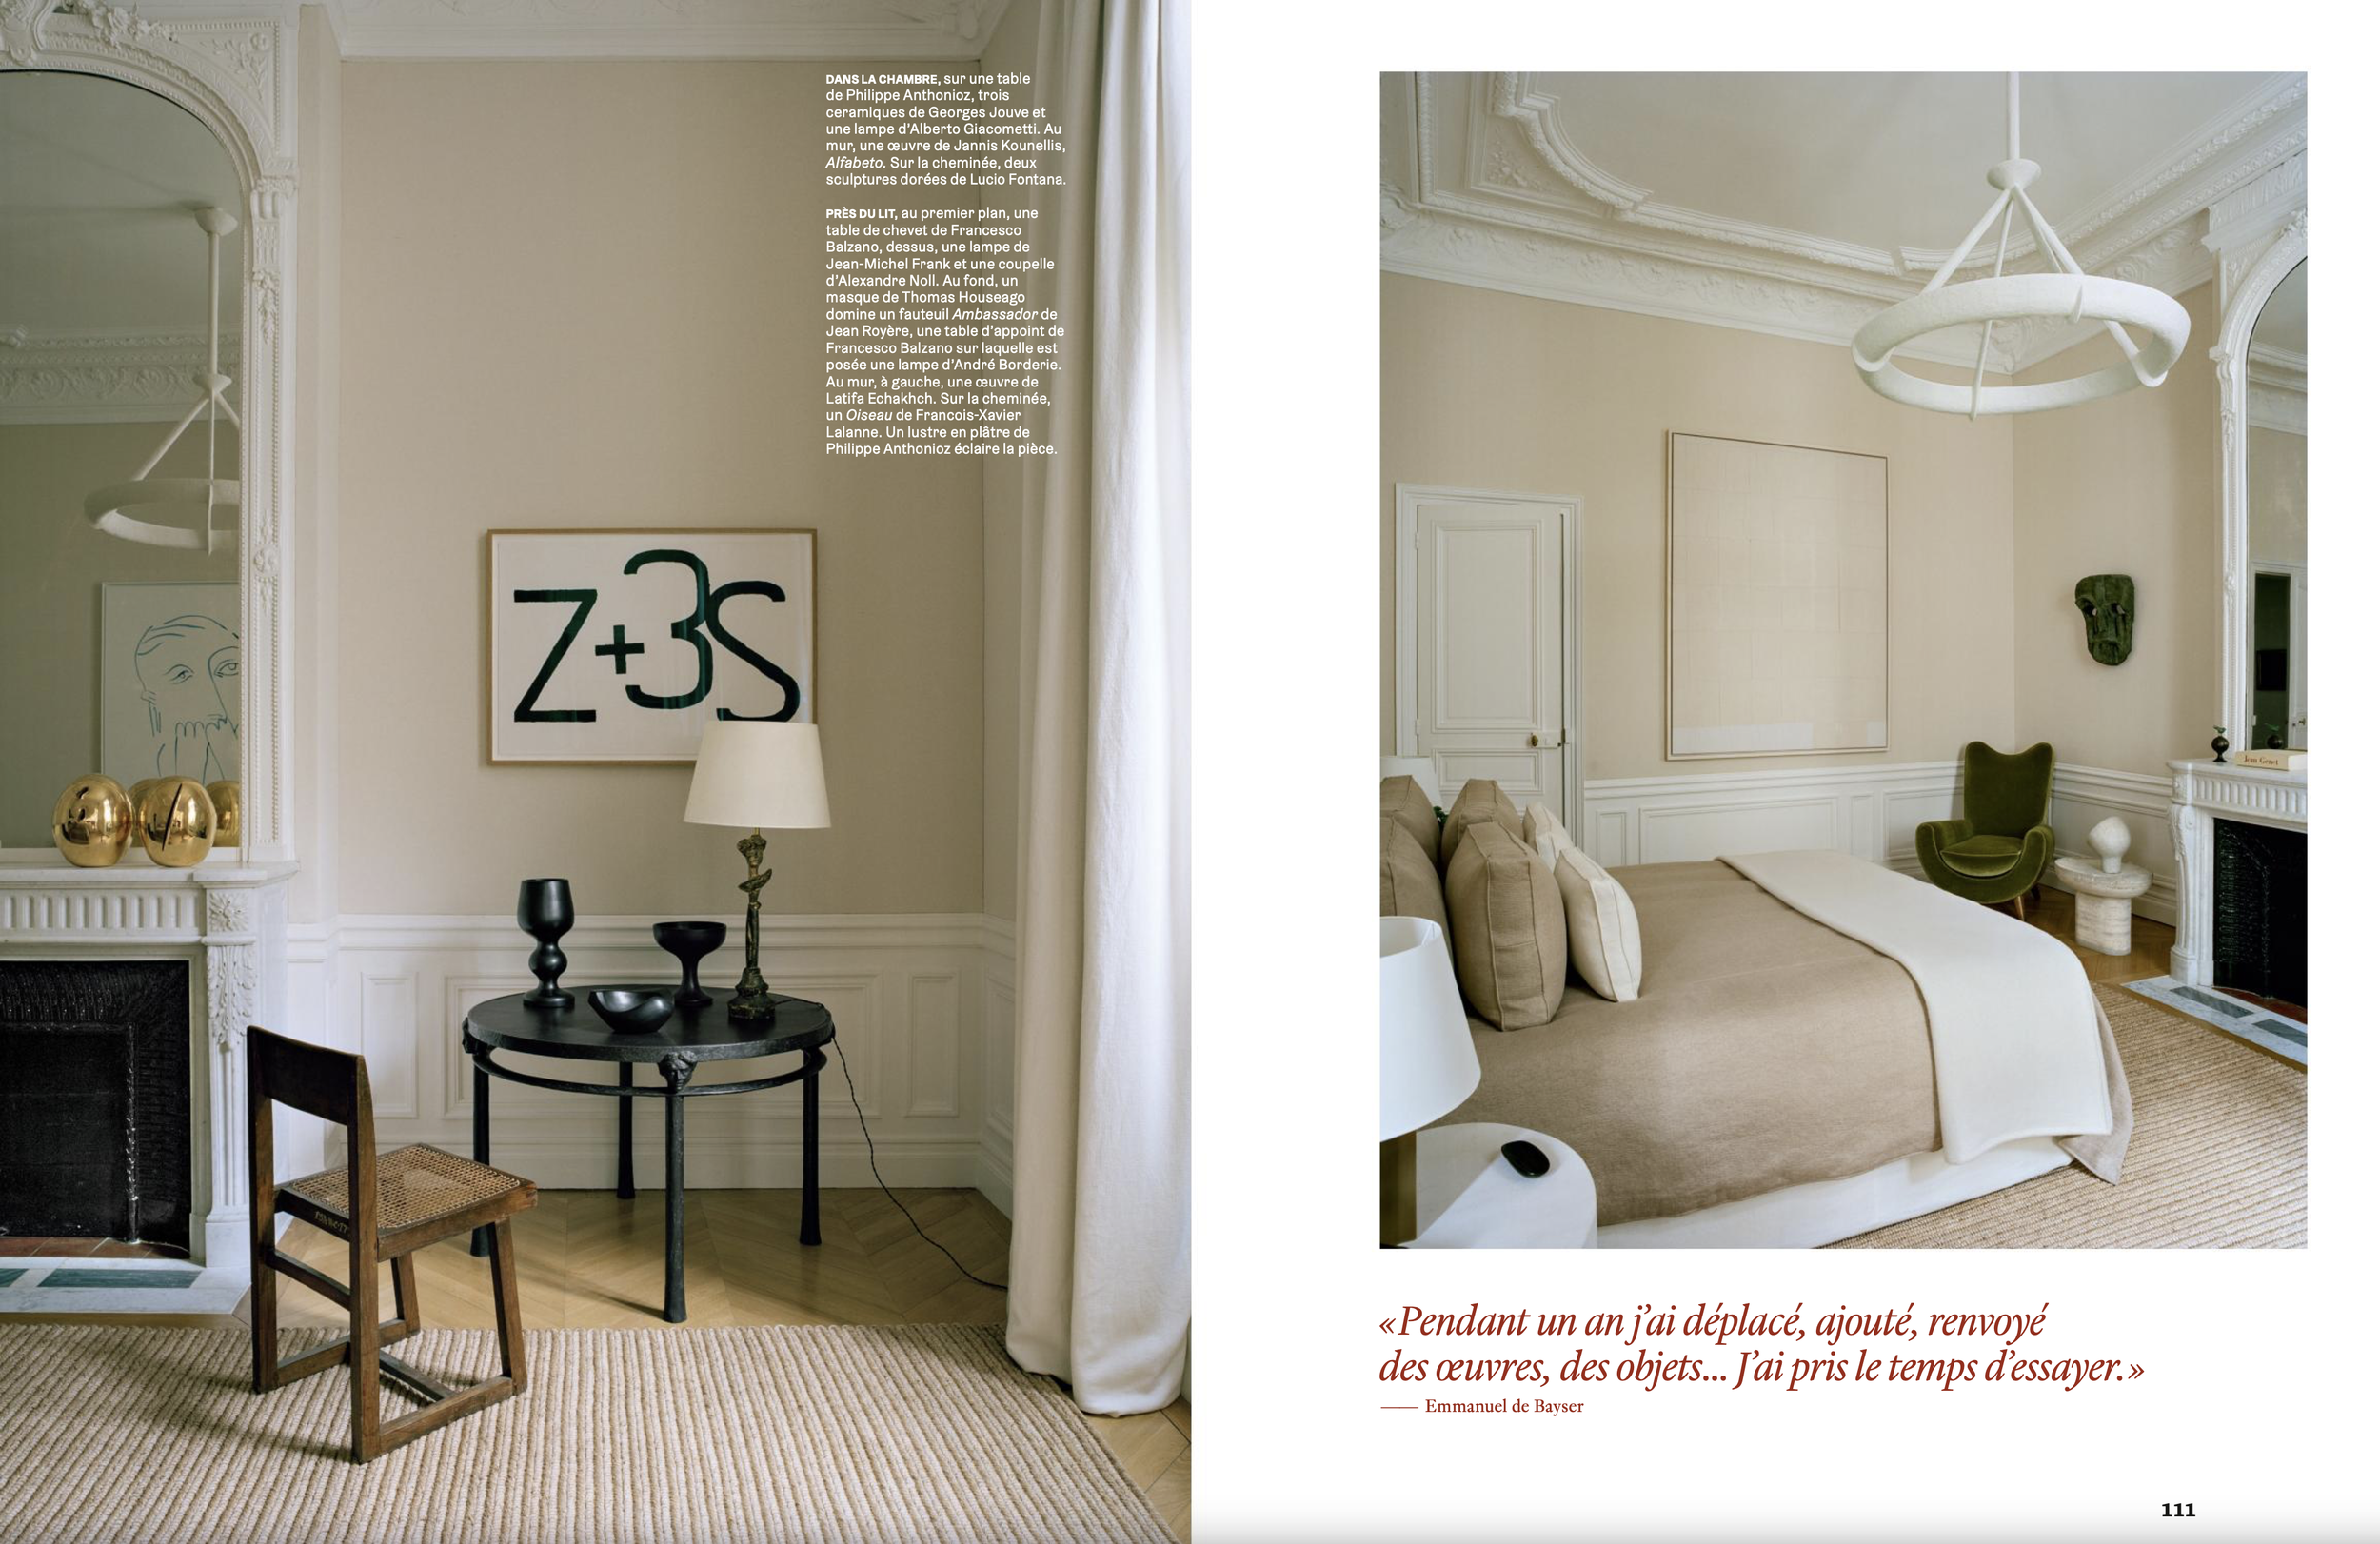 AD FRANCE _ EMMANUEL DE BAYSER'S PARISIAN FLAT WITH CUSTOM MADE COLLECTIBLE DESIGN _ JANUARY 19